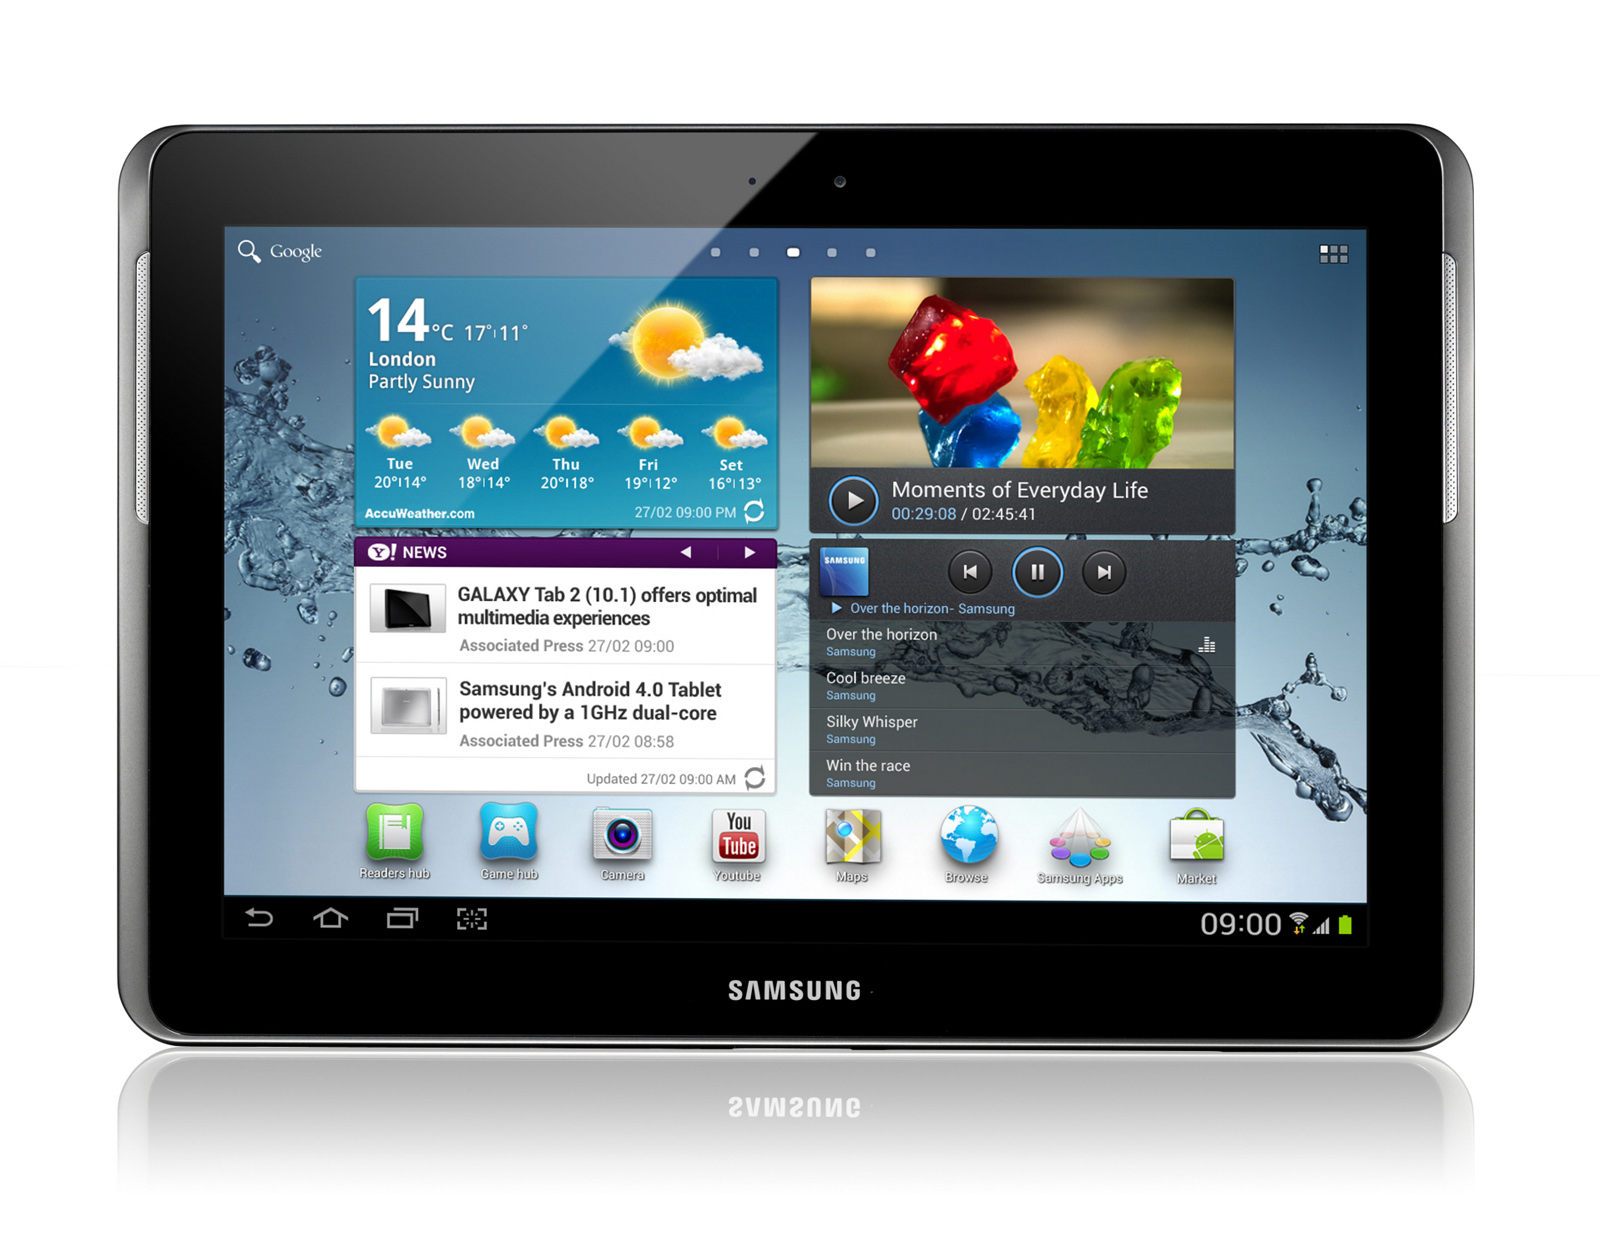 INTRODUCING SAMSUNG'S NEW GALAXY TAB 2 SERIES